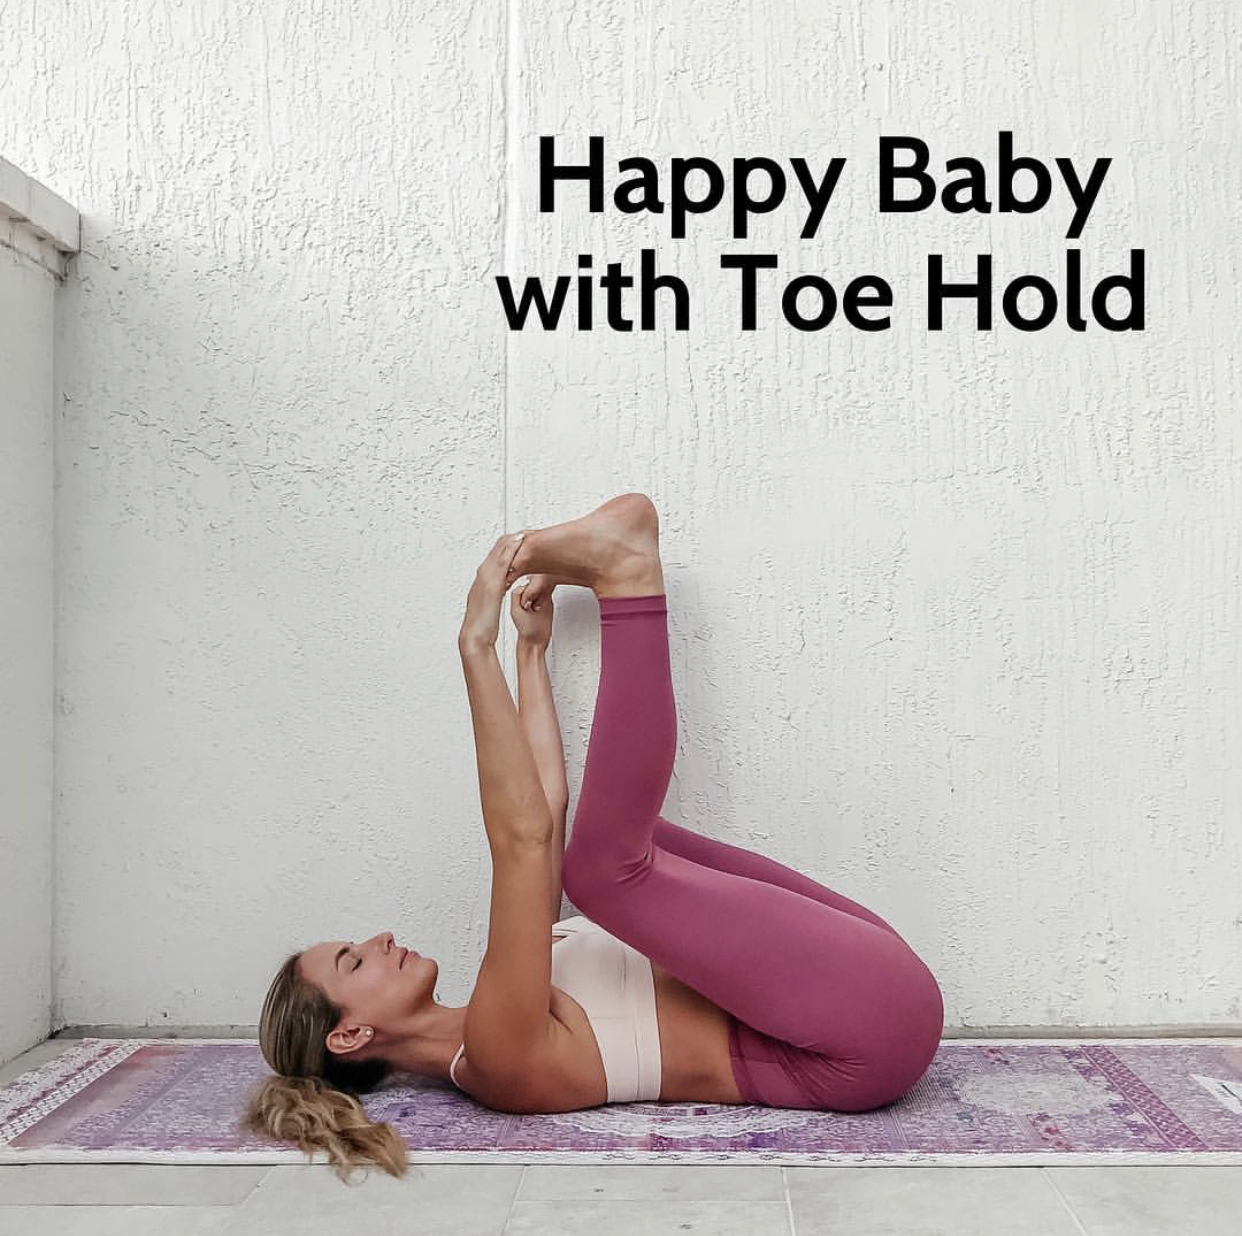 Happy Baby With Toe Hold x 10 deep breaths. Hold your feet from your toes as you pull them towards you gently.